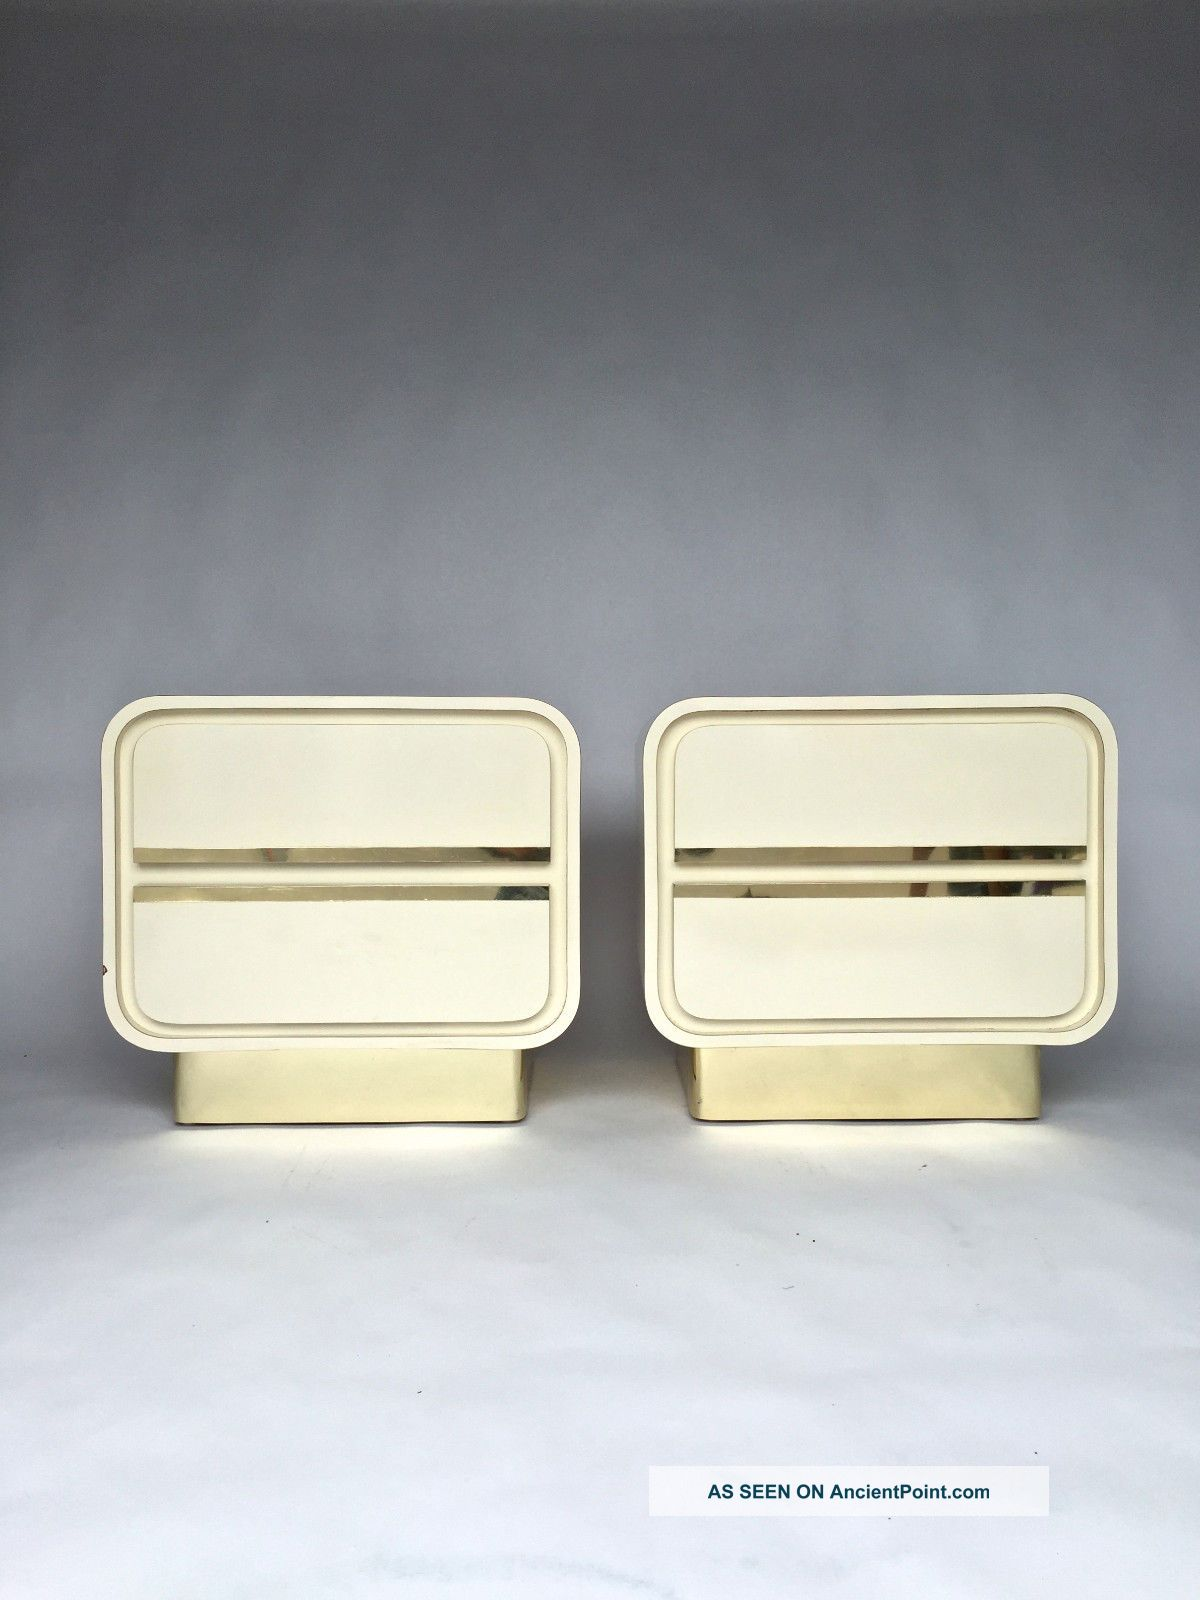 Pair Vintage White Ivory Lacquered Brass Plinth Nighsttands Milo Baughman Style Post-1950 photo